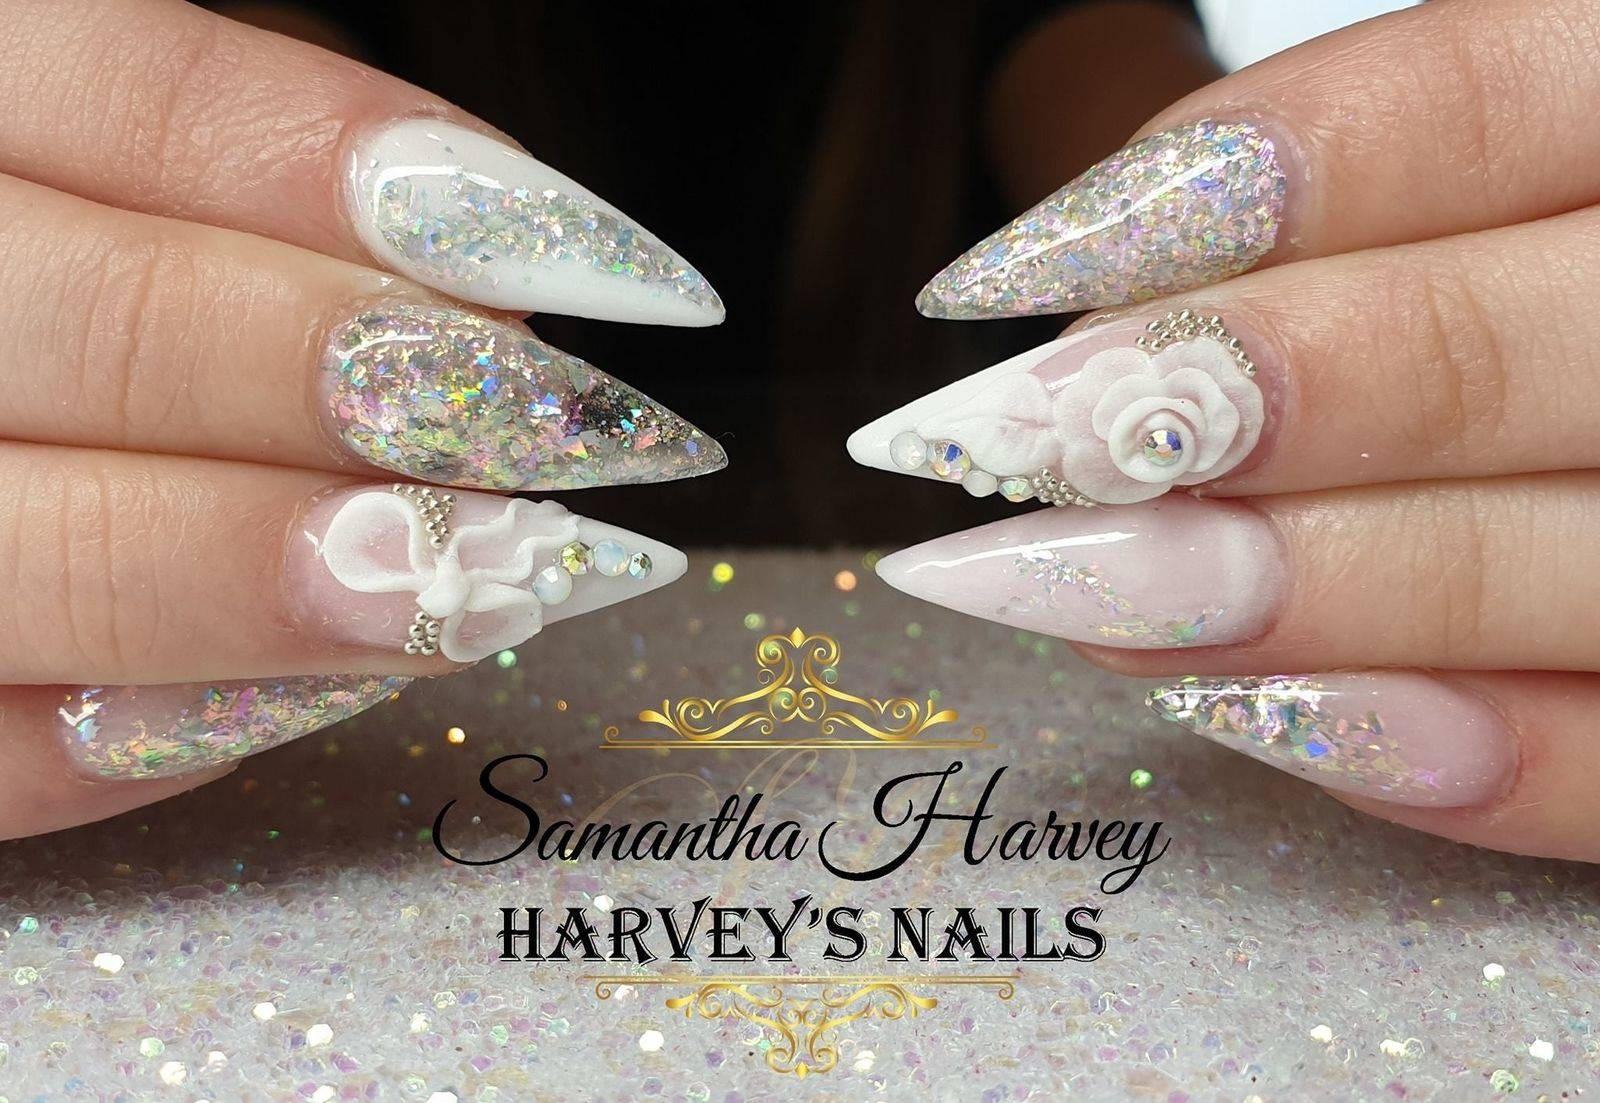 Full Acrylic design with flakes, 3D acrylic art and Swarovski crystals